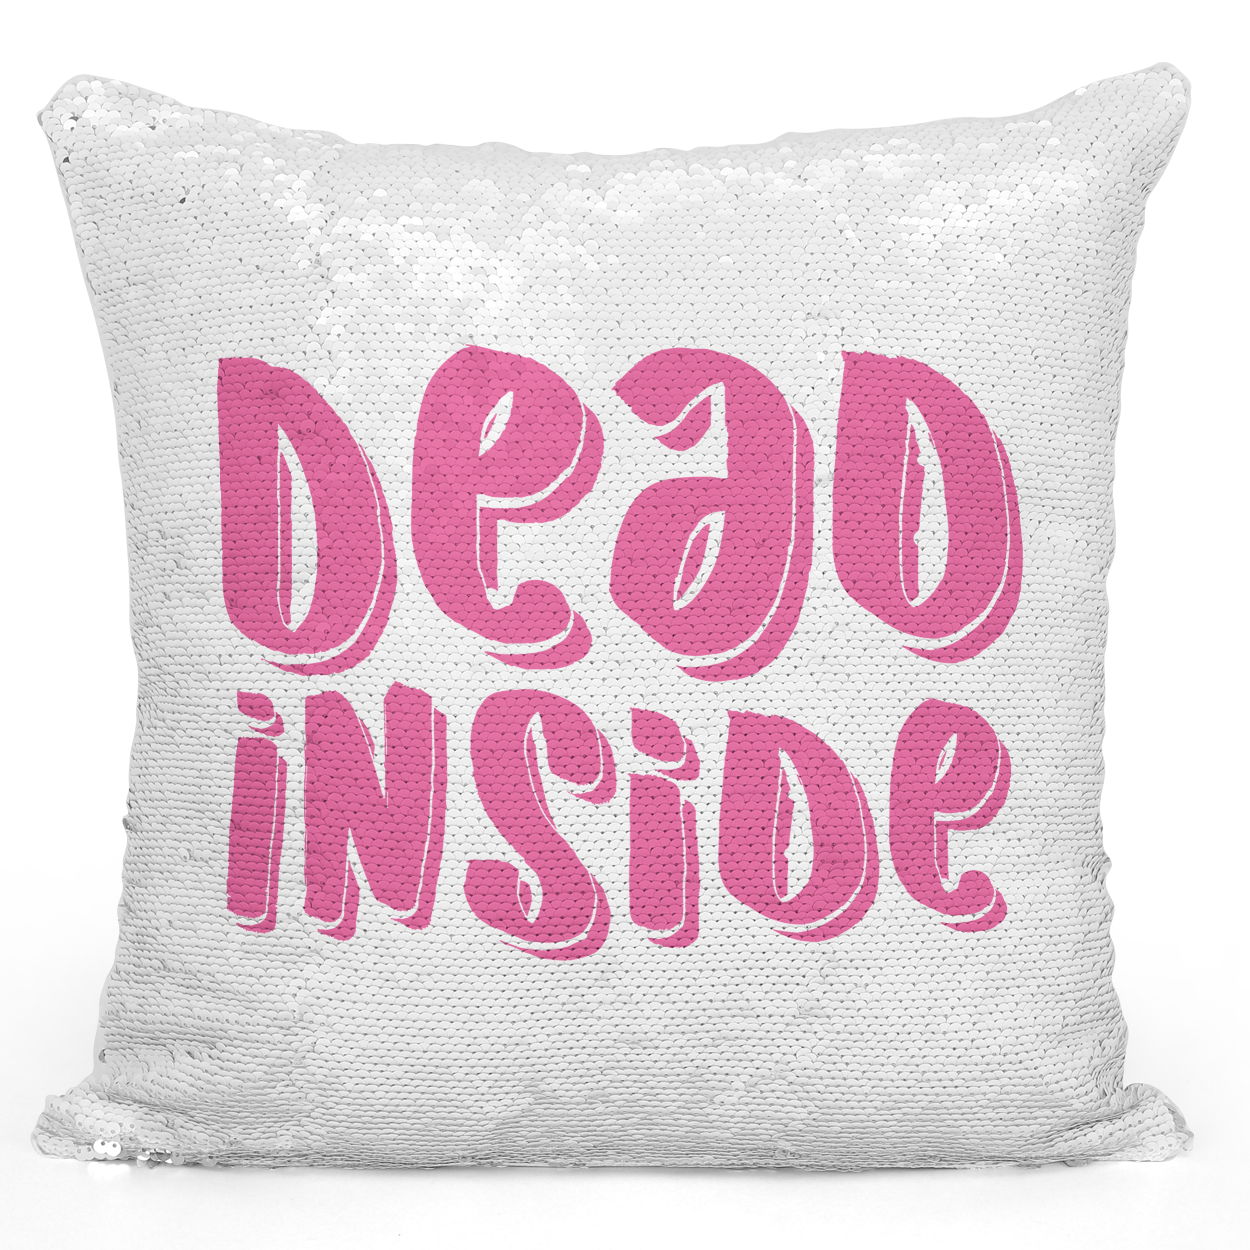 16x16 inch Sequin Throw Pillow Magic Flip Pillow Dead Inside Pink Pillow Loud Universe